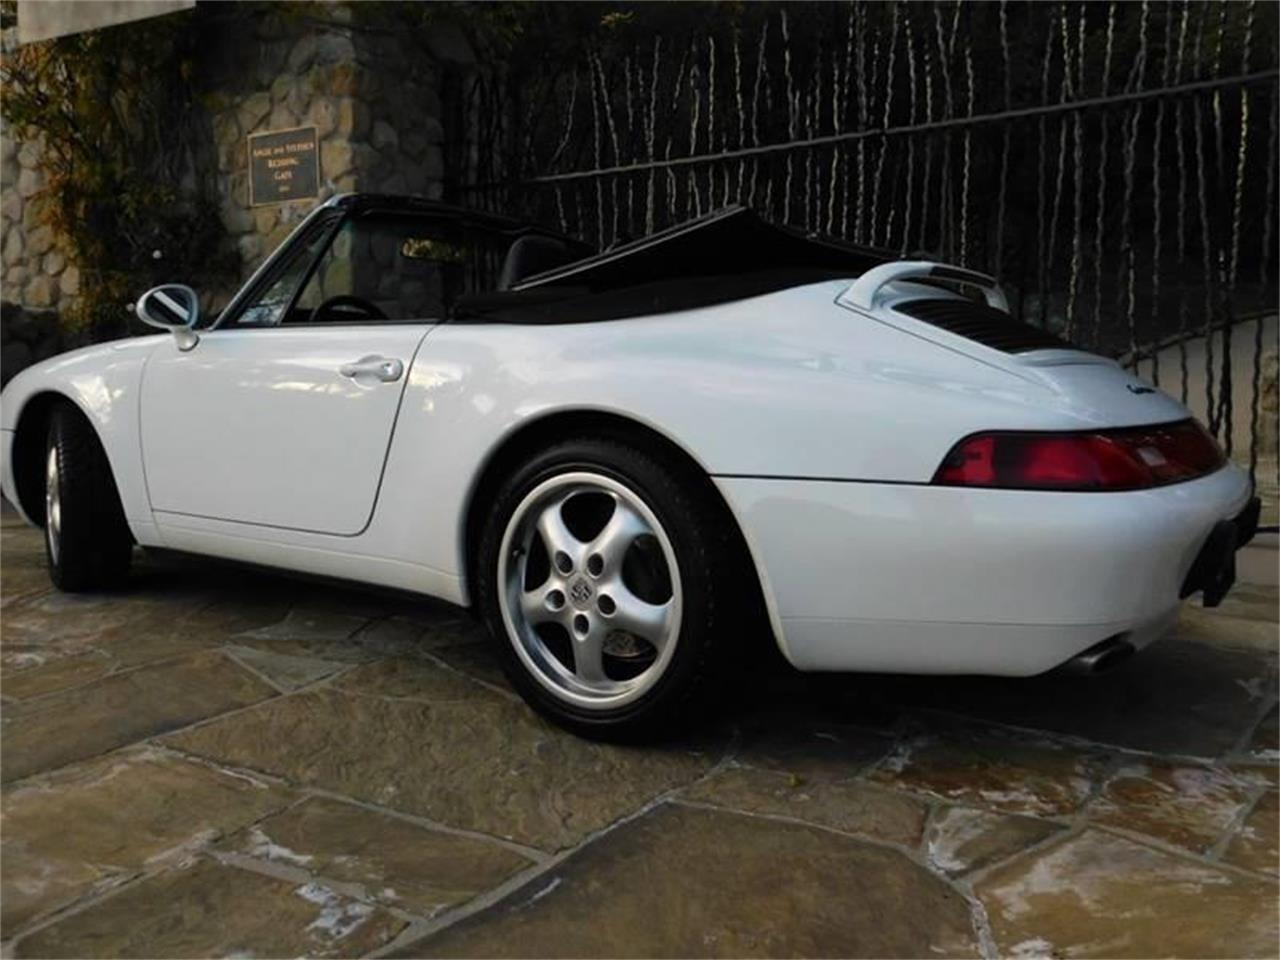 1995 Porsche 911 for sale in Santa Barbara, CA – photo 5